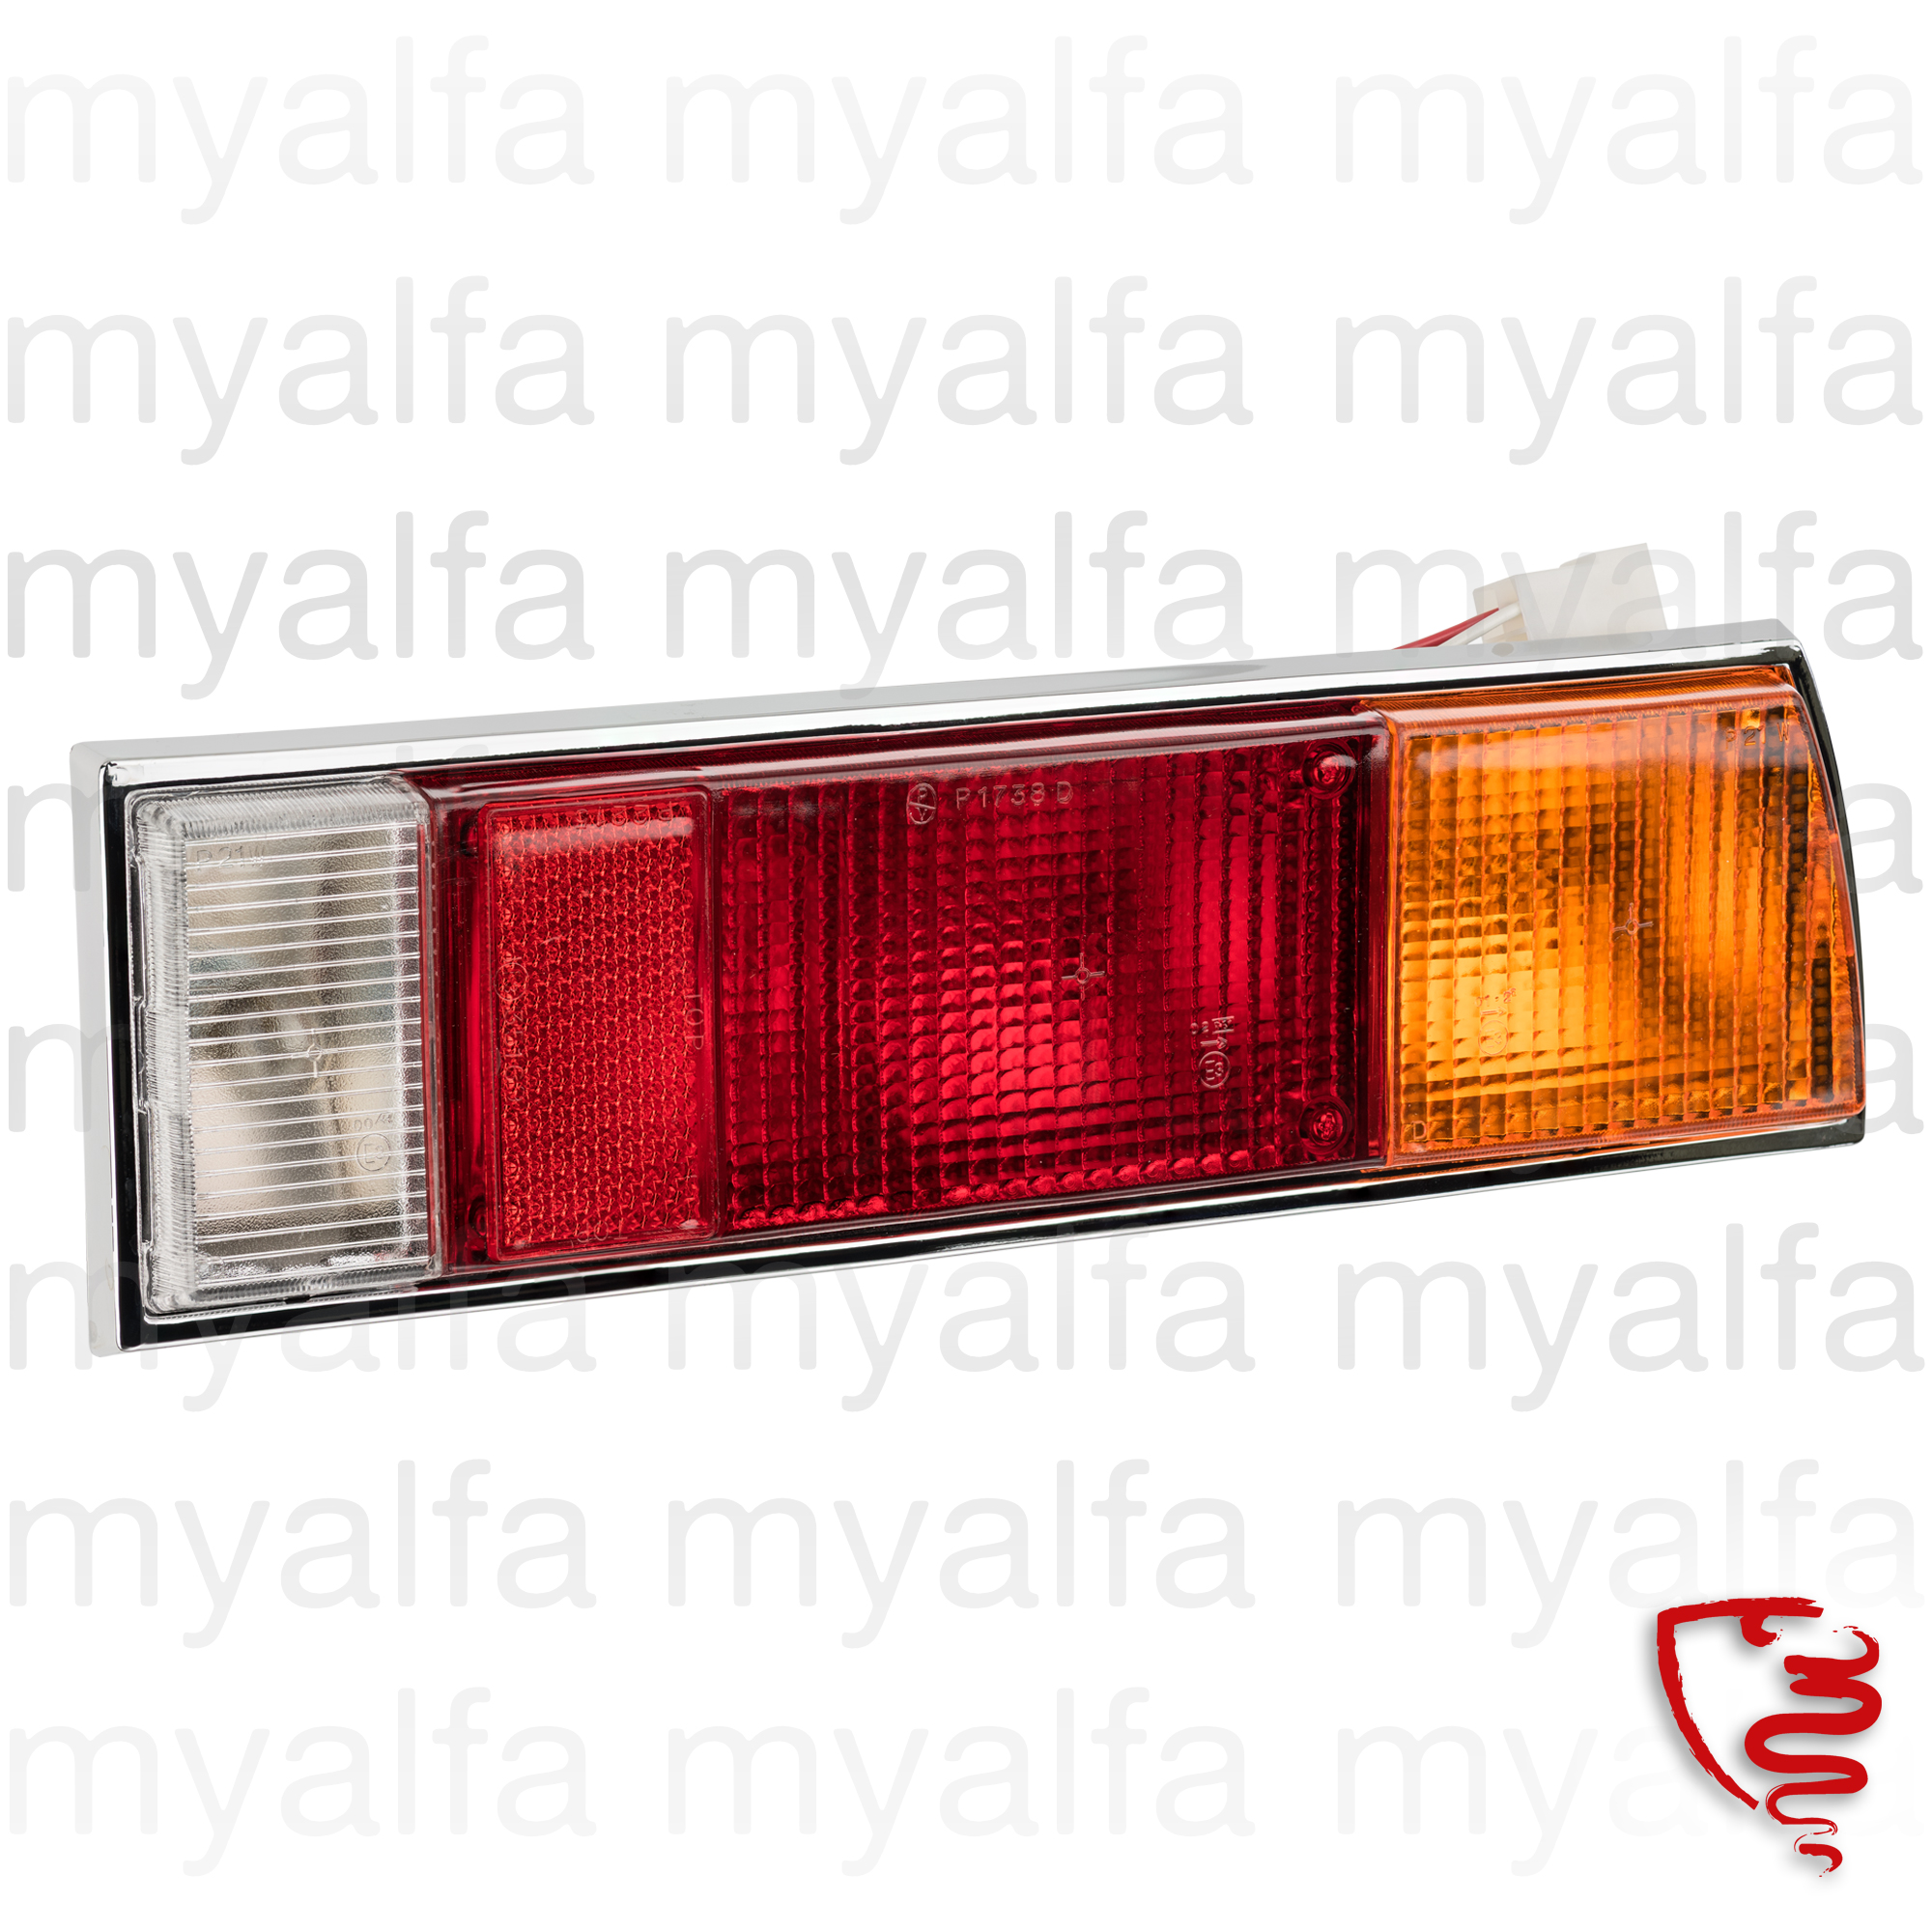 Farolim behind Spider 70-82 dt reproduction for 105/115, Spider, Body parts, Lighting, Tail lights